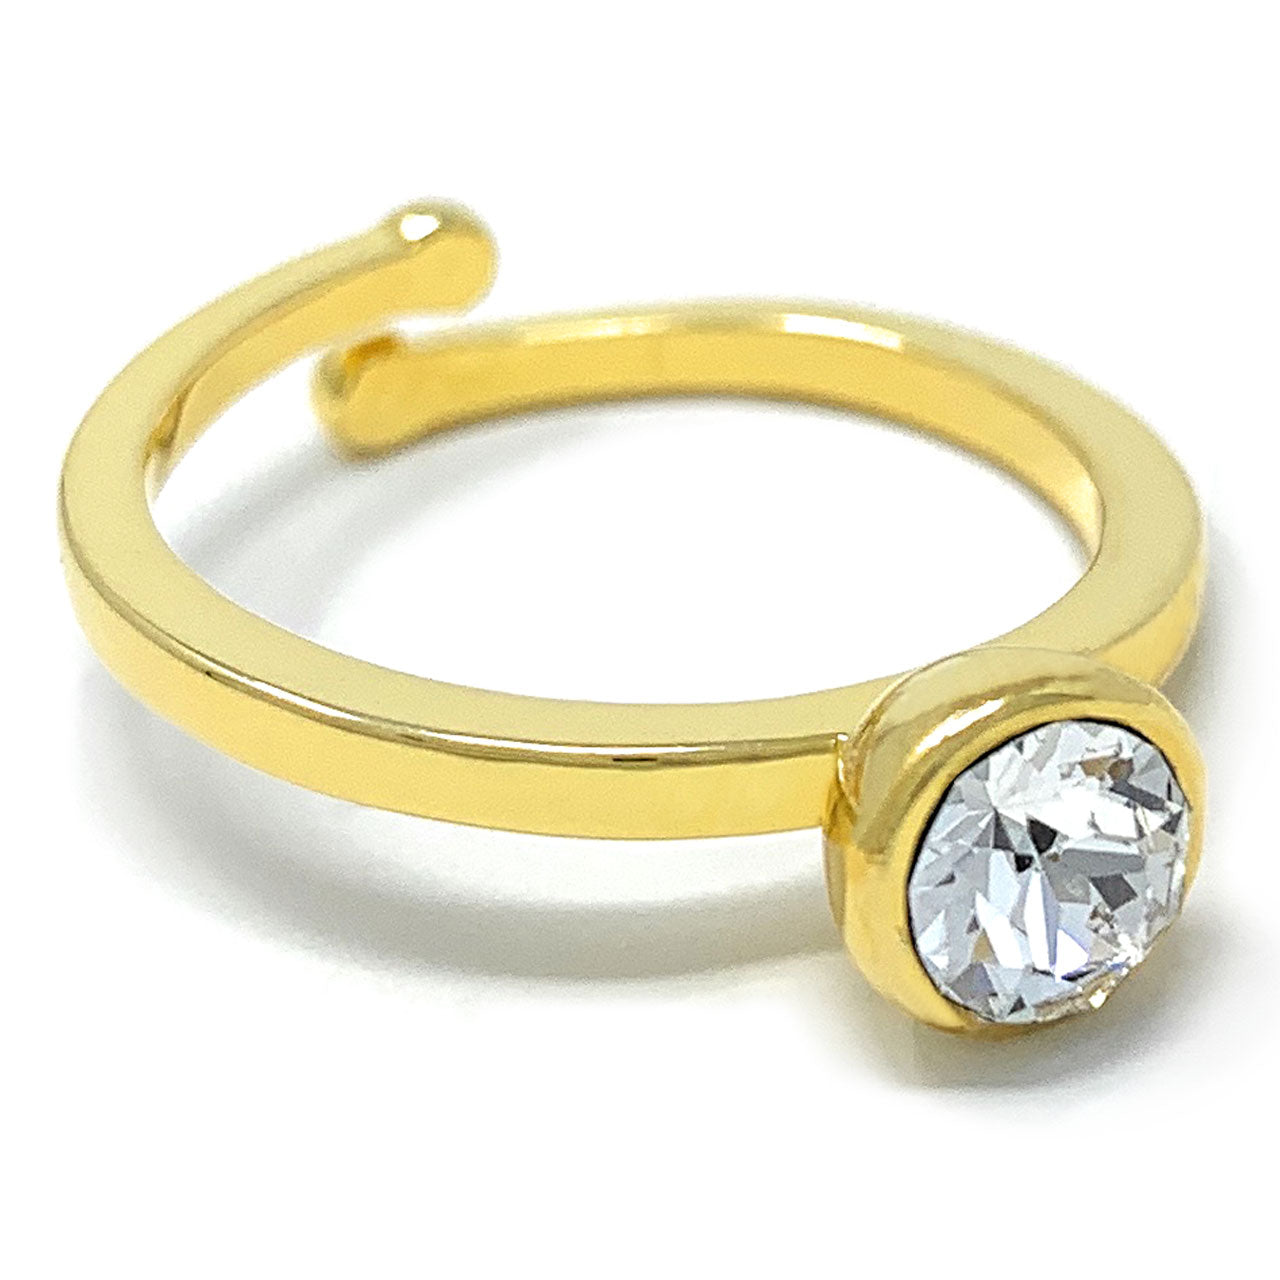 Harley Adjustable Ring with White Clear Round Crystals from Swarovski Gold Plated - Ed Heart